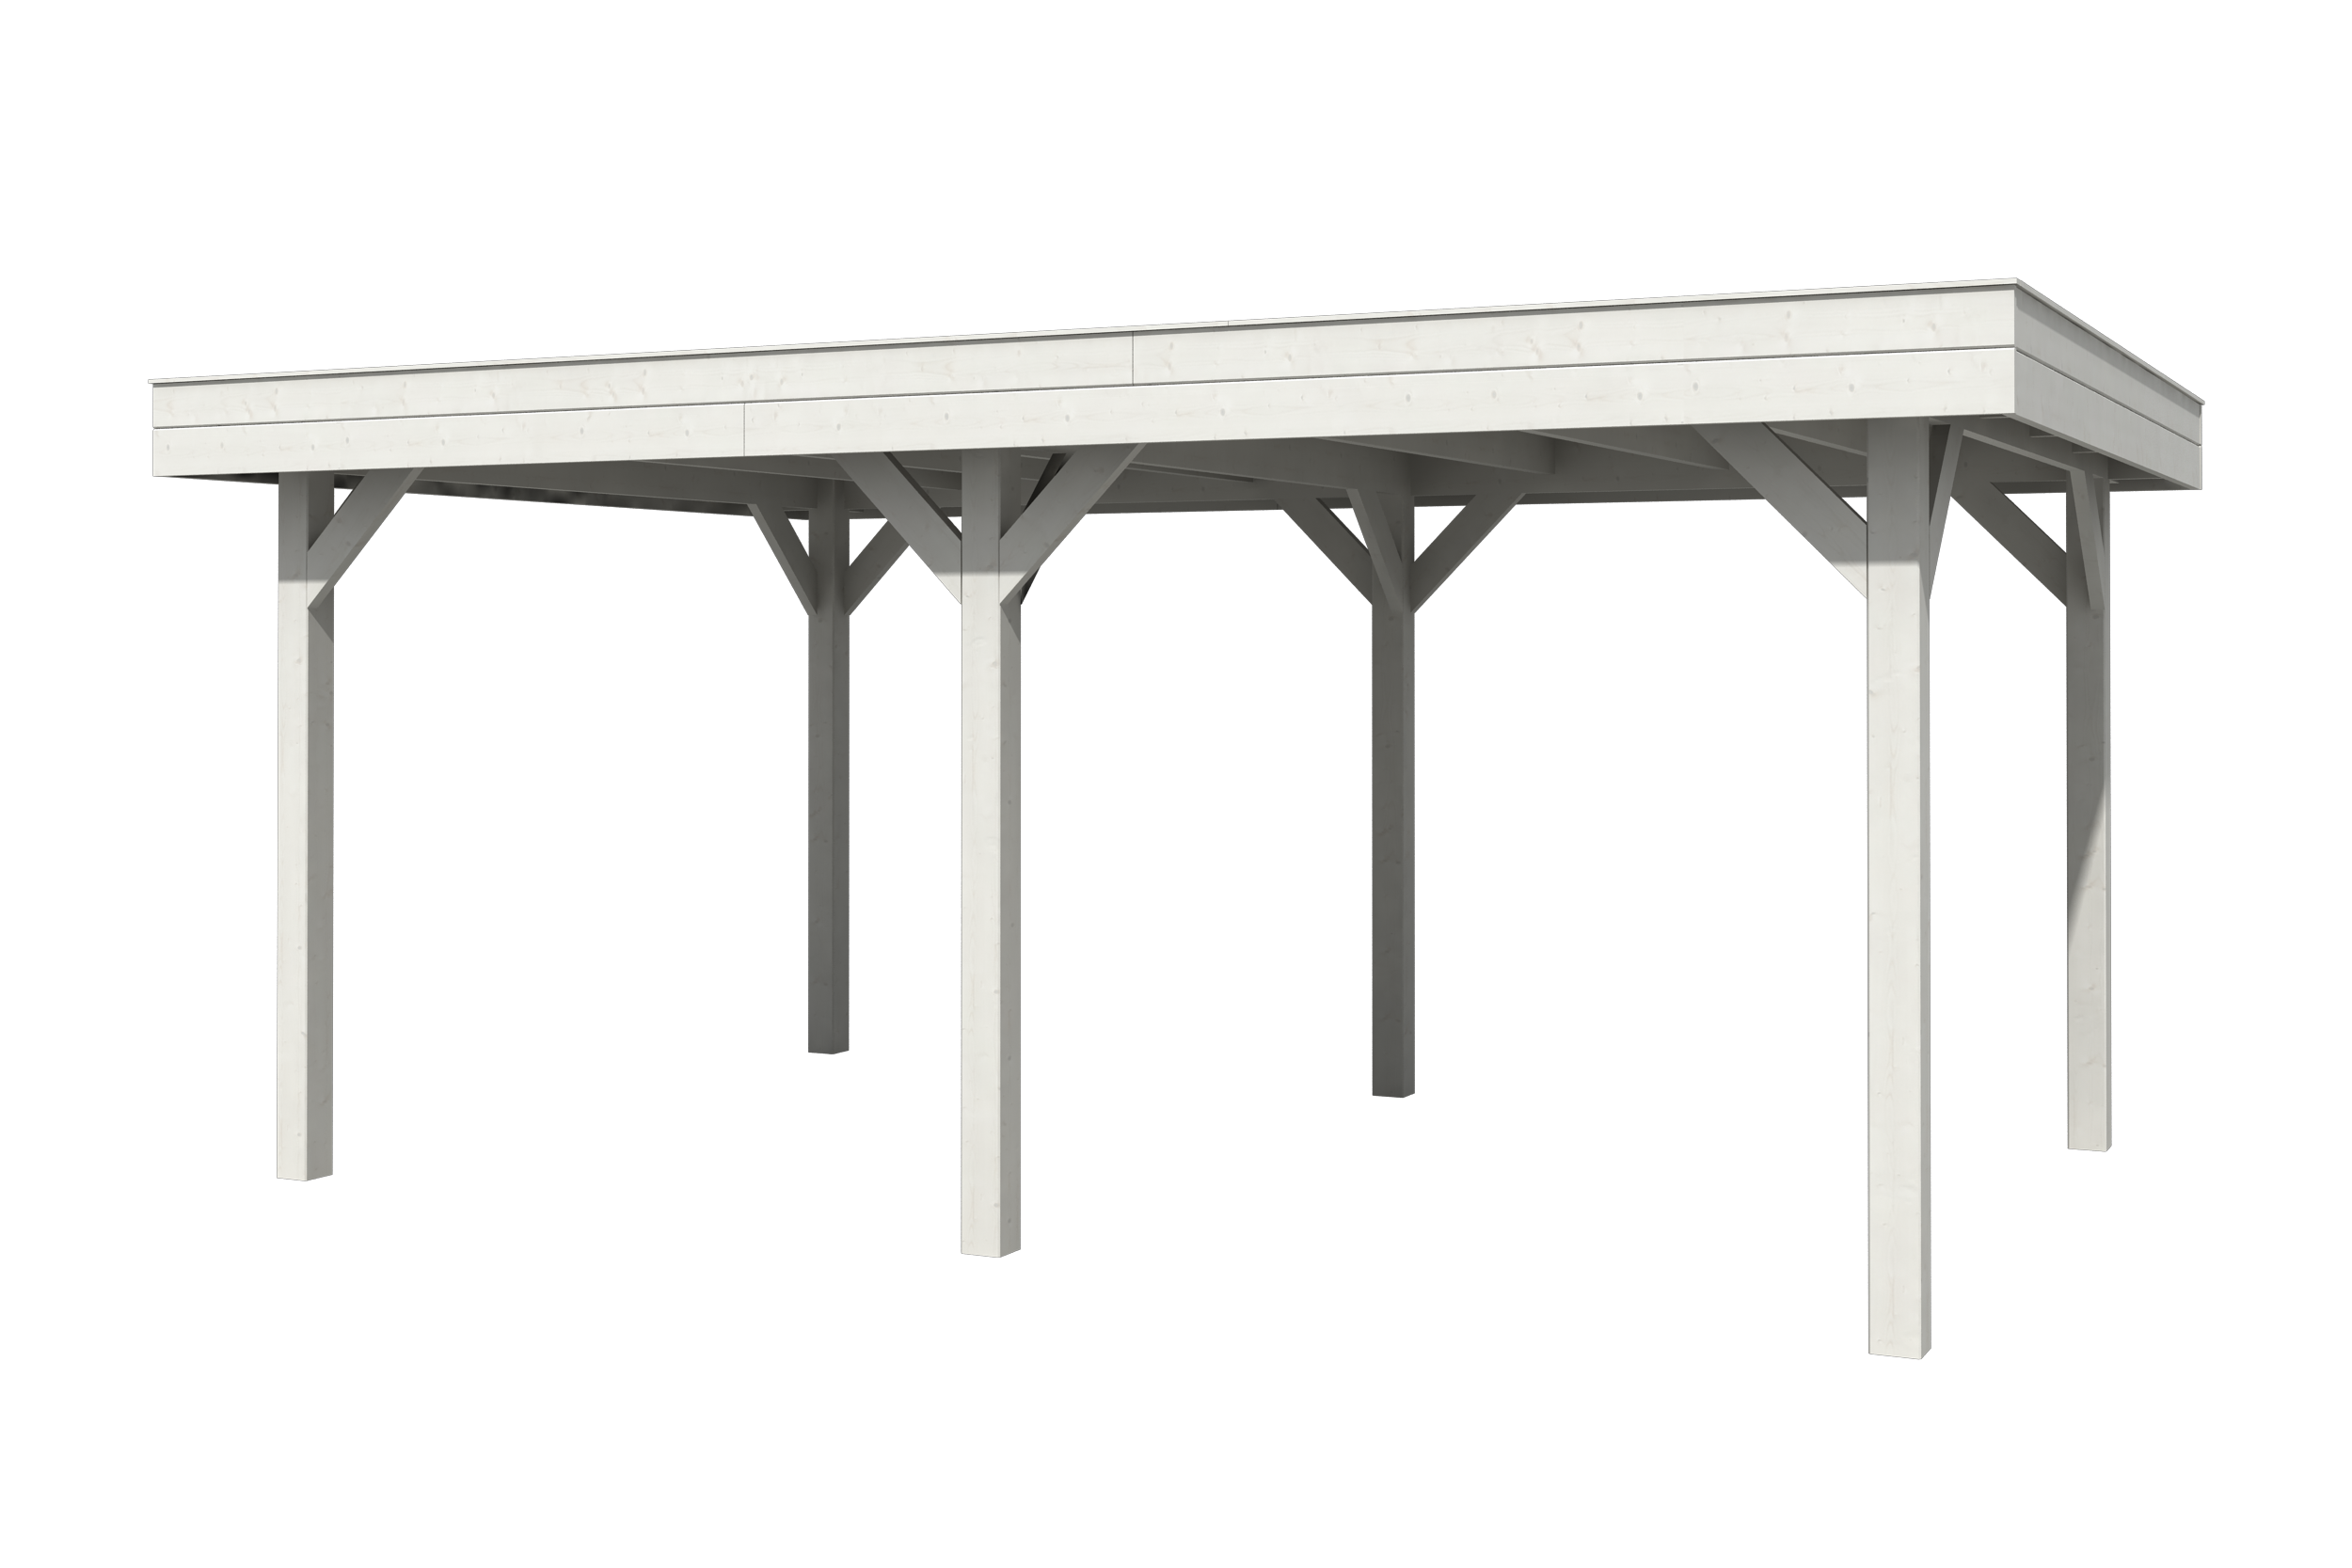 Outdoor Life Products | Outdoor Living 5030 | Pearl White | 496 x 304